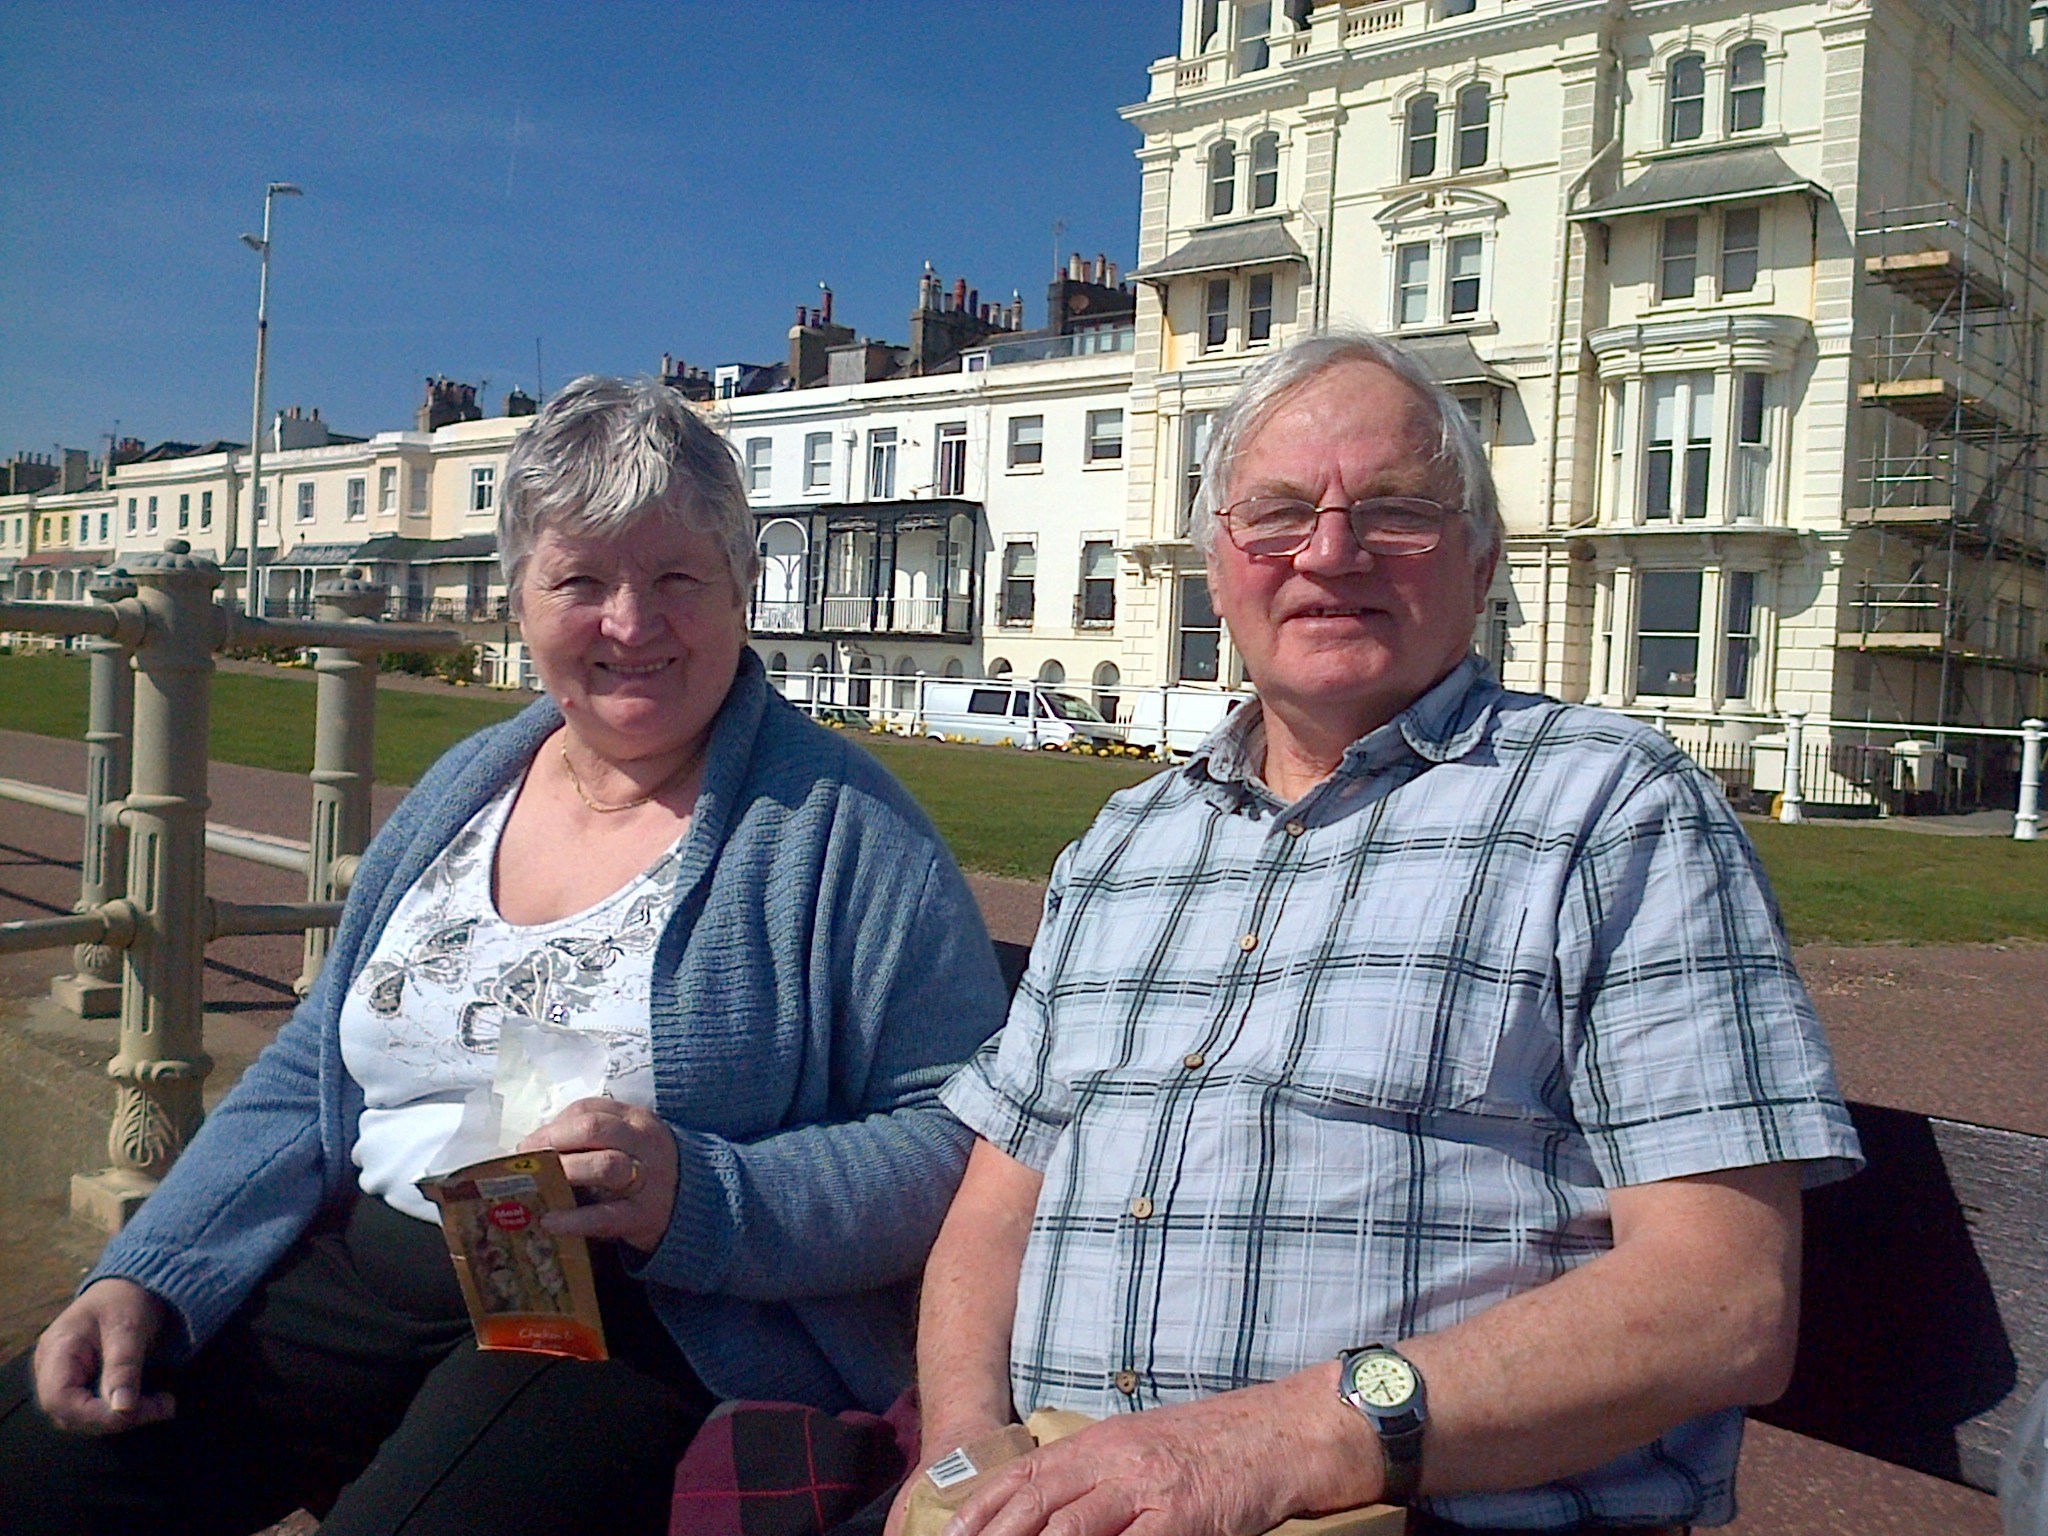 On the seafront at St Leonards